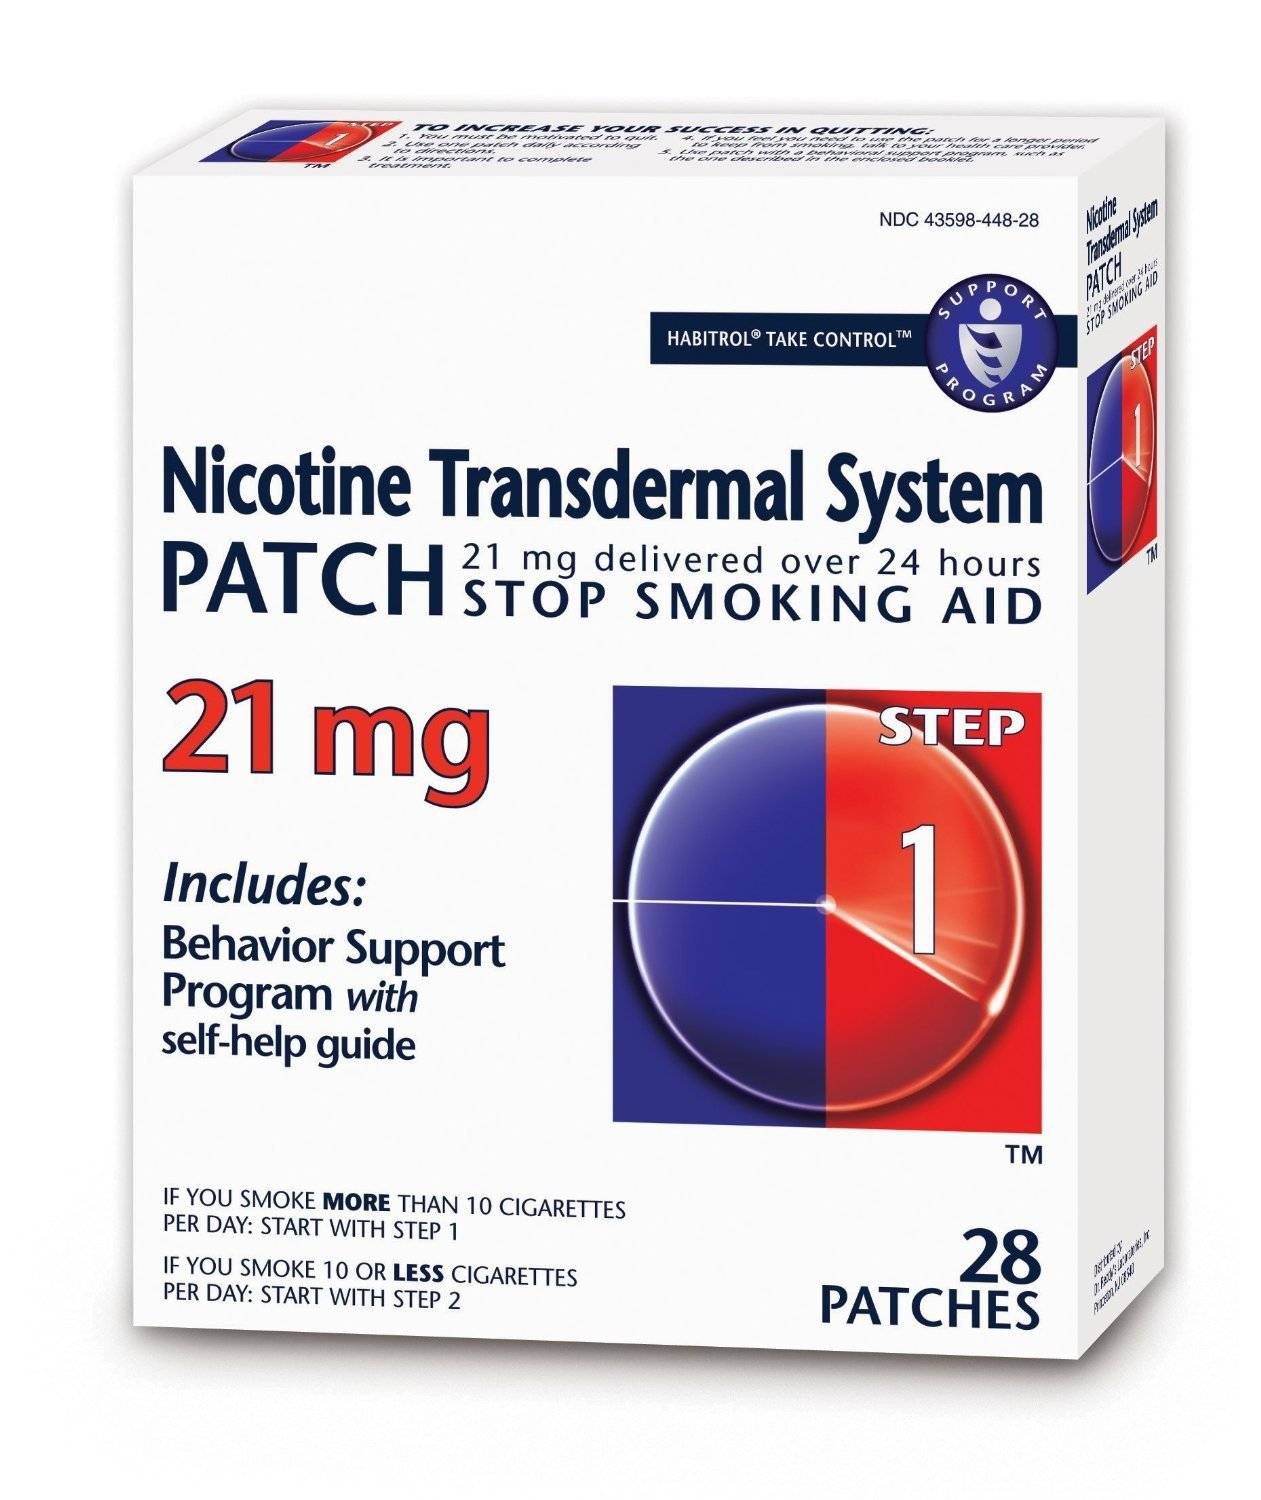 Habitrol Nicotine Transdermal System Stop Smoking Aid, Step 1 (21 mg), 28 Patches Per Box (2 pack)